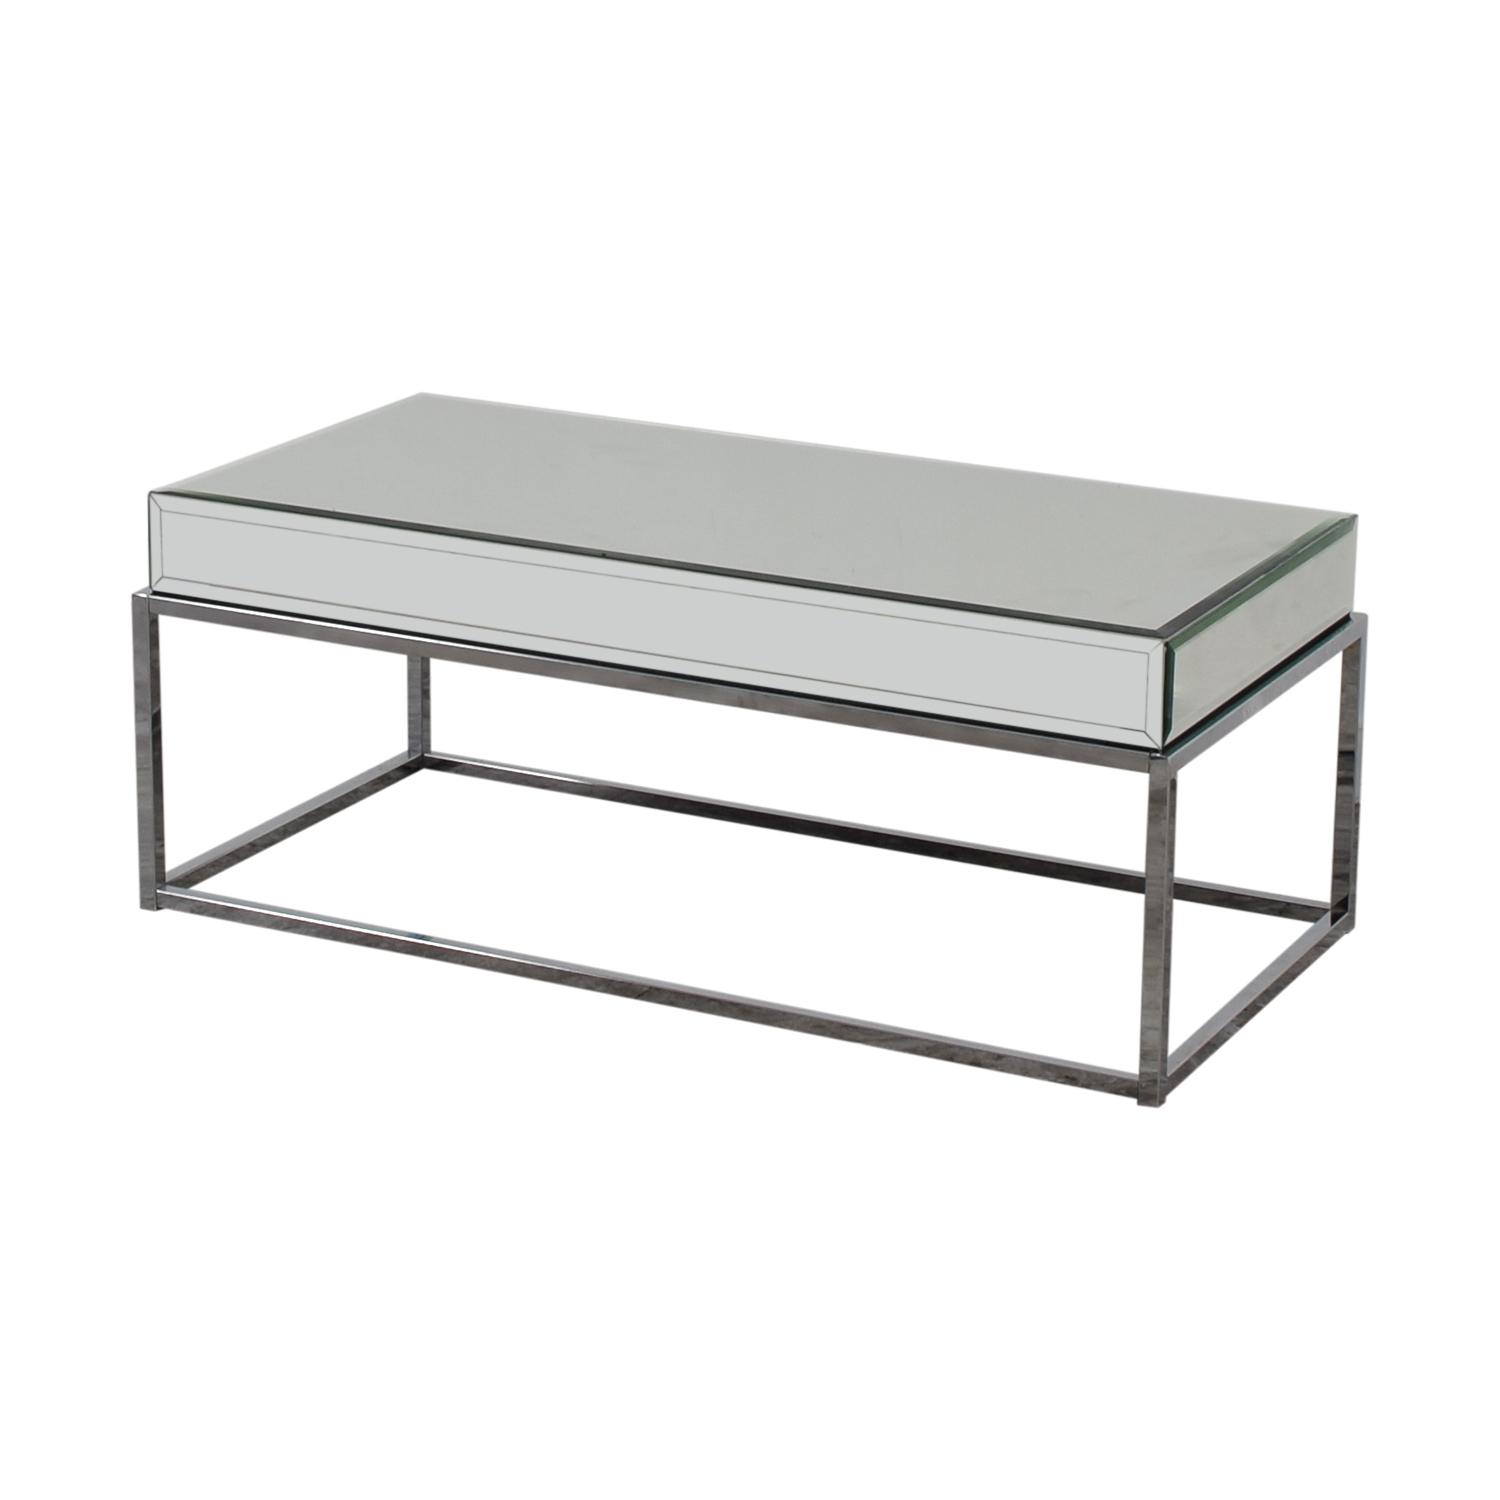 buy Joss and Main Joss and Main Kyla Coffee Table online